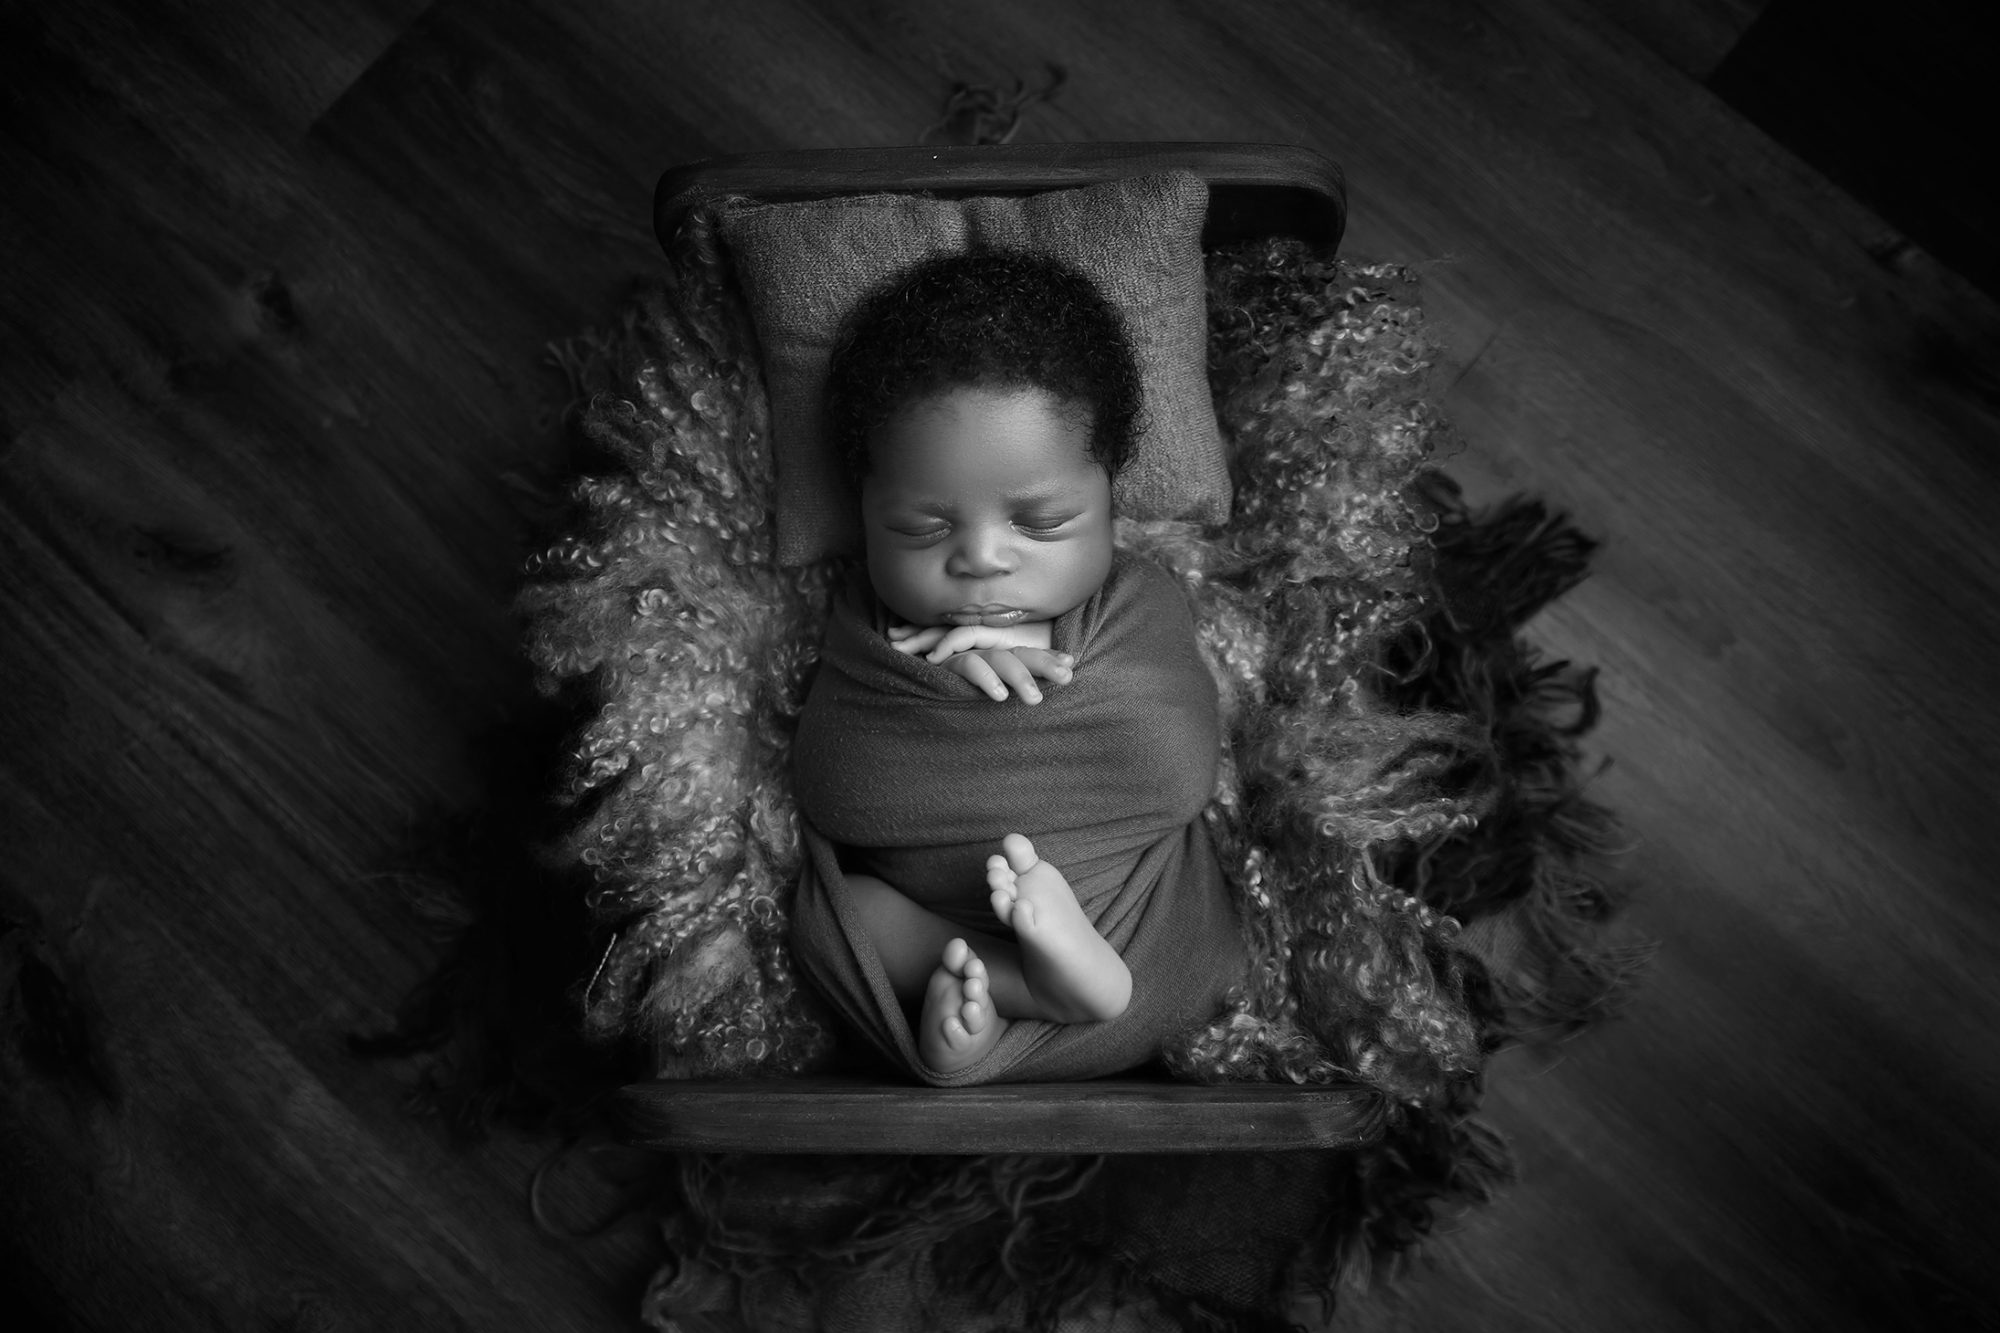 a black and white picture of a nigerian newborn baby boy asleep in a newborn bed